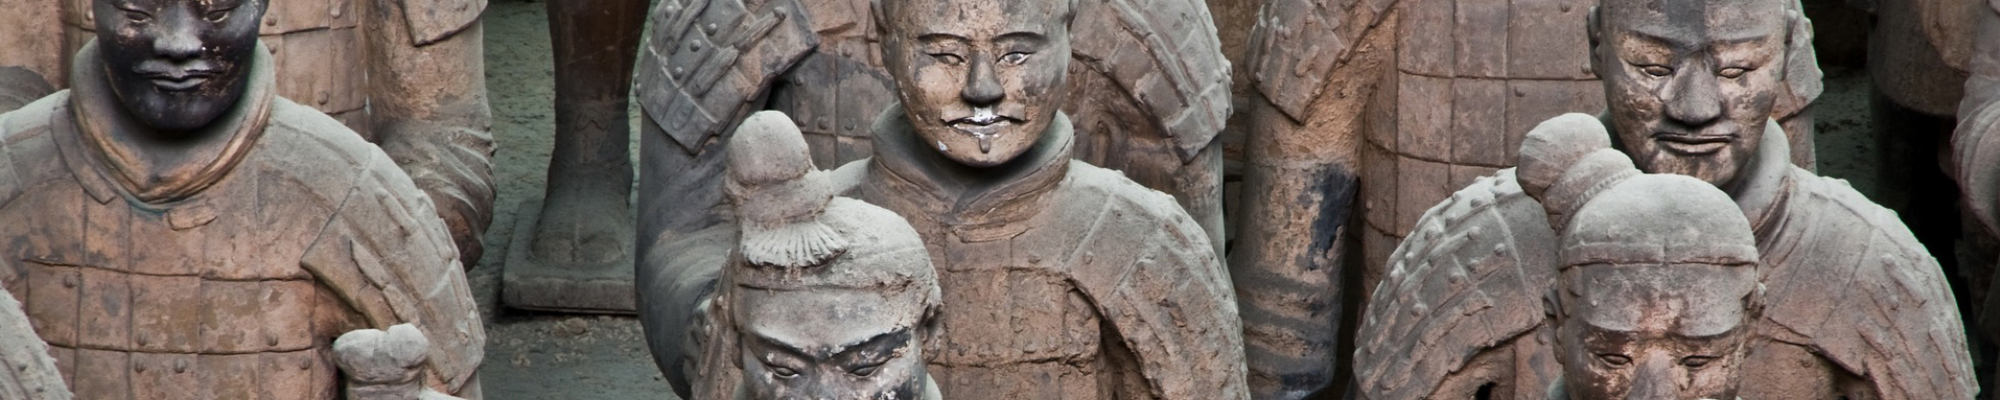 Terracotta Warriors from China